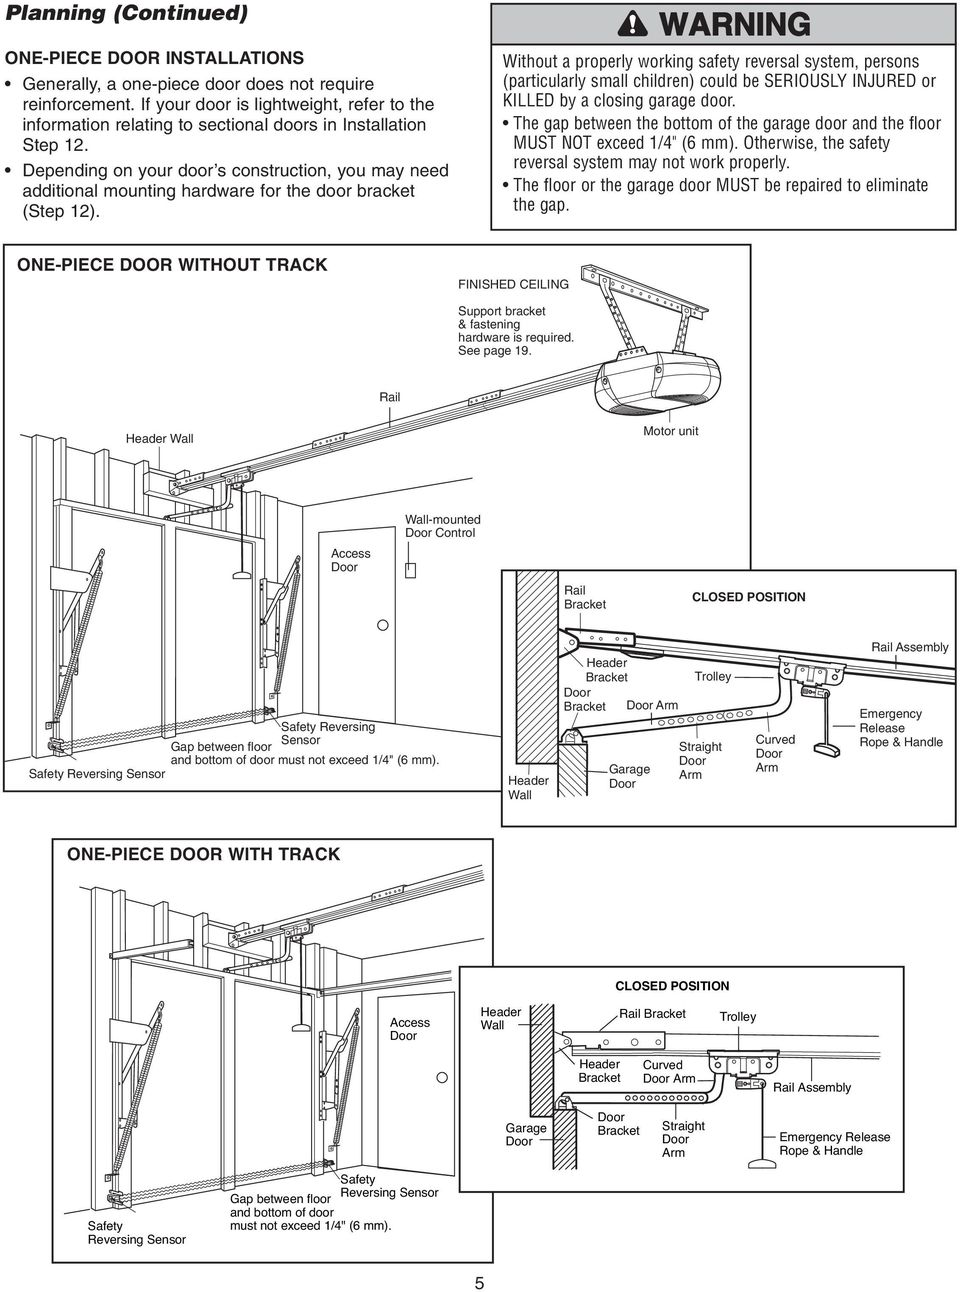 Garage Door Opener Owner S Manual English For Residential Use Only Chamberlain Wiring Diagram Additionally Depending On Your Construction You May Need Additional Mounting Hardware The 6 Carton Inventory